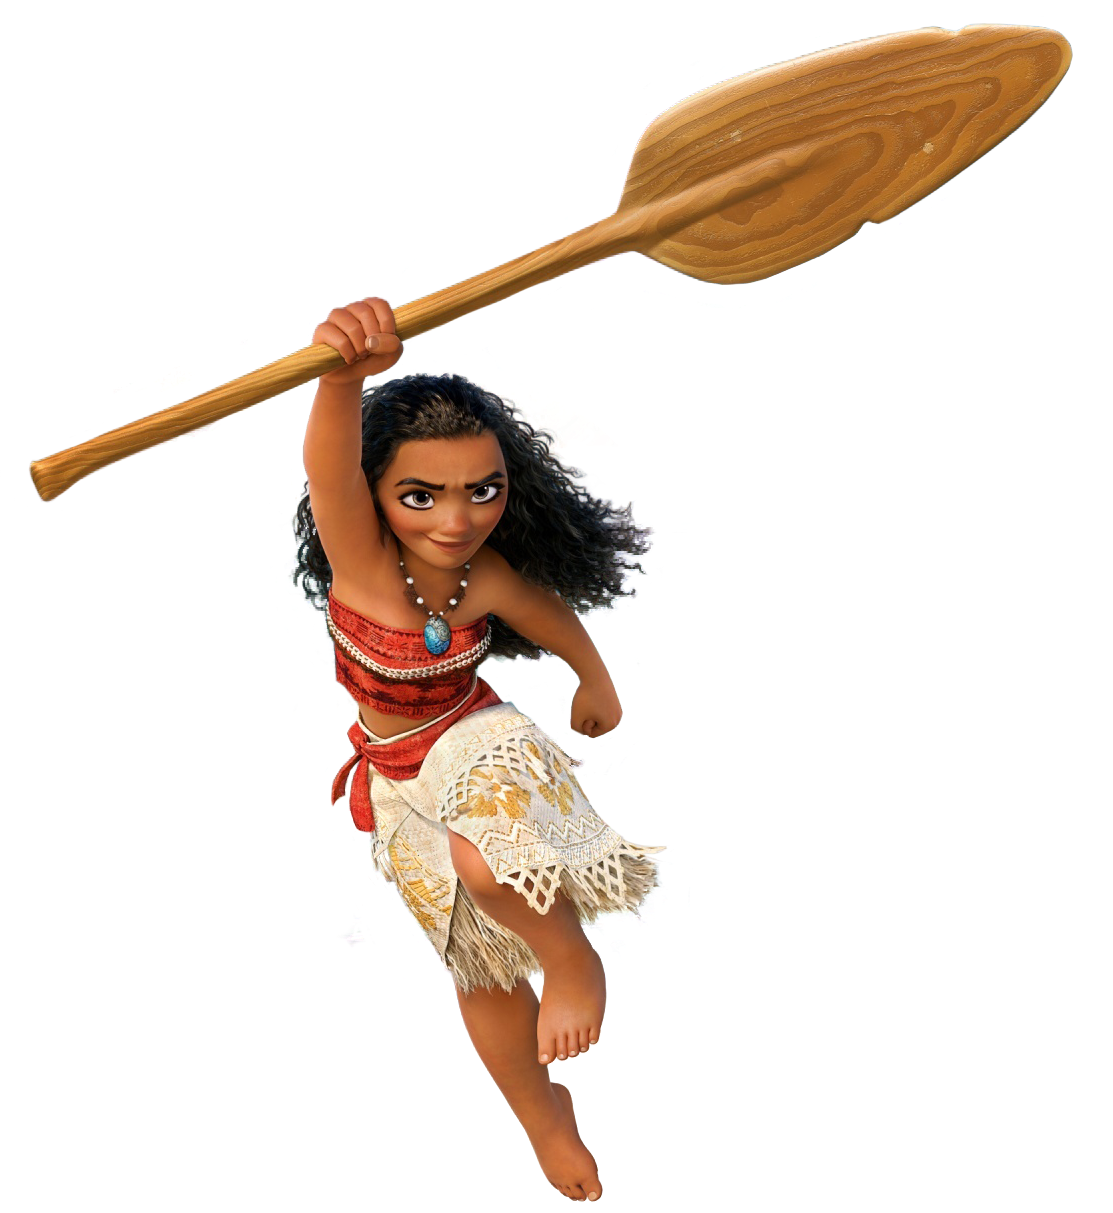 Image render wikia fandom. Png moana banner black and white library